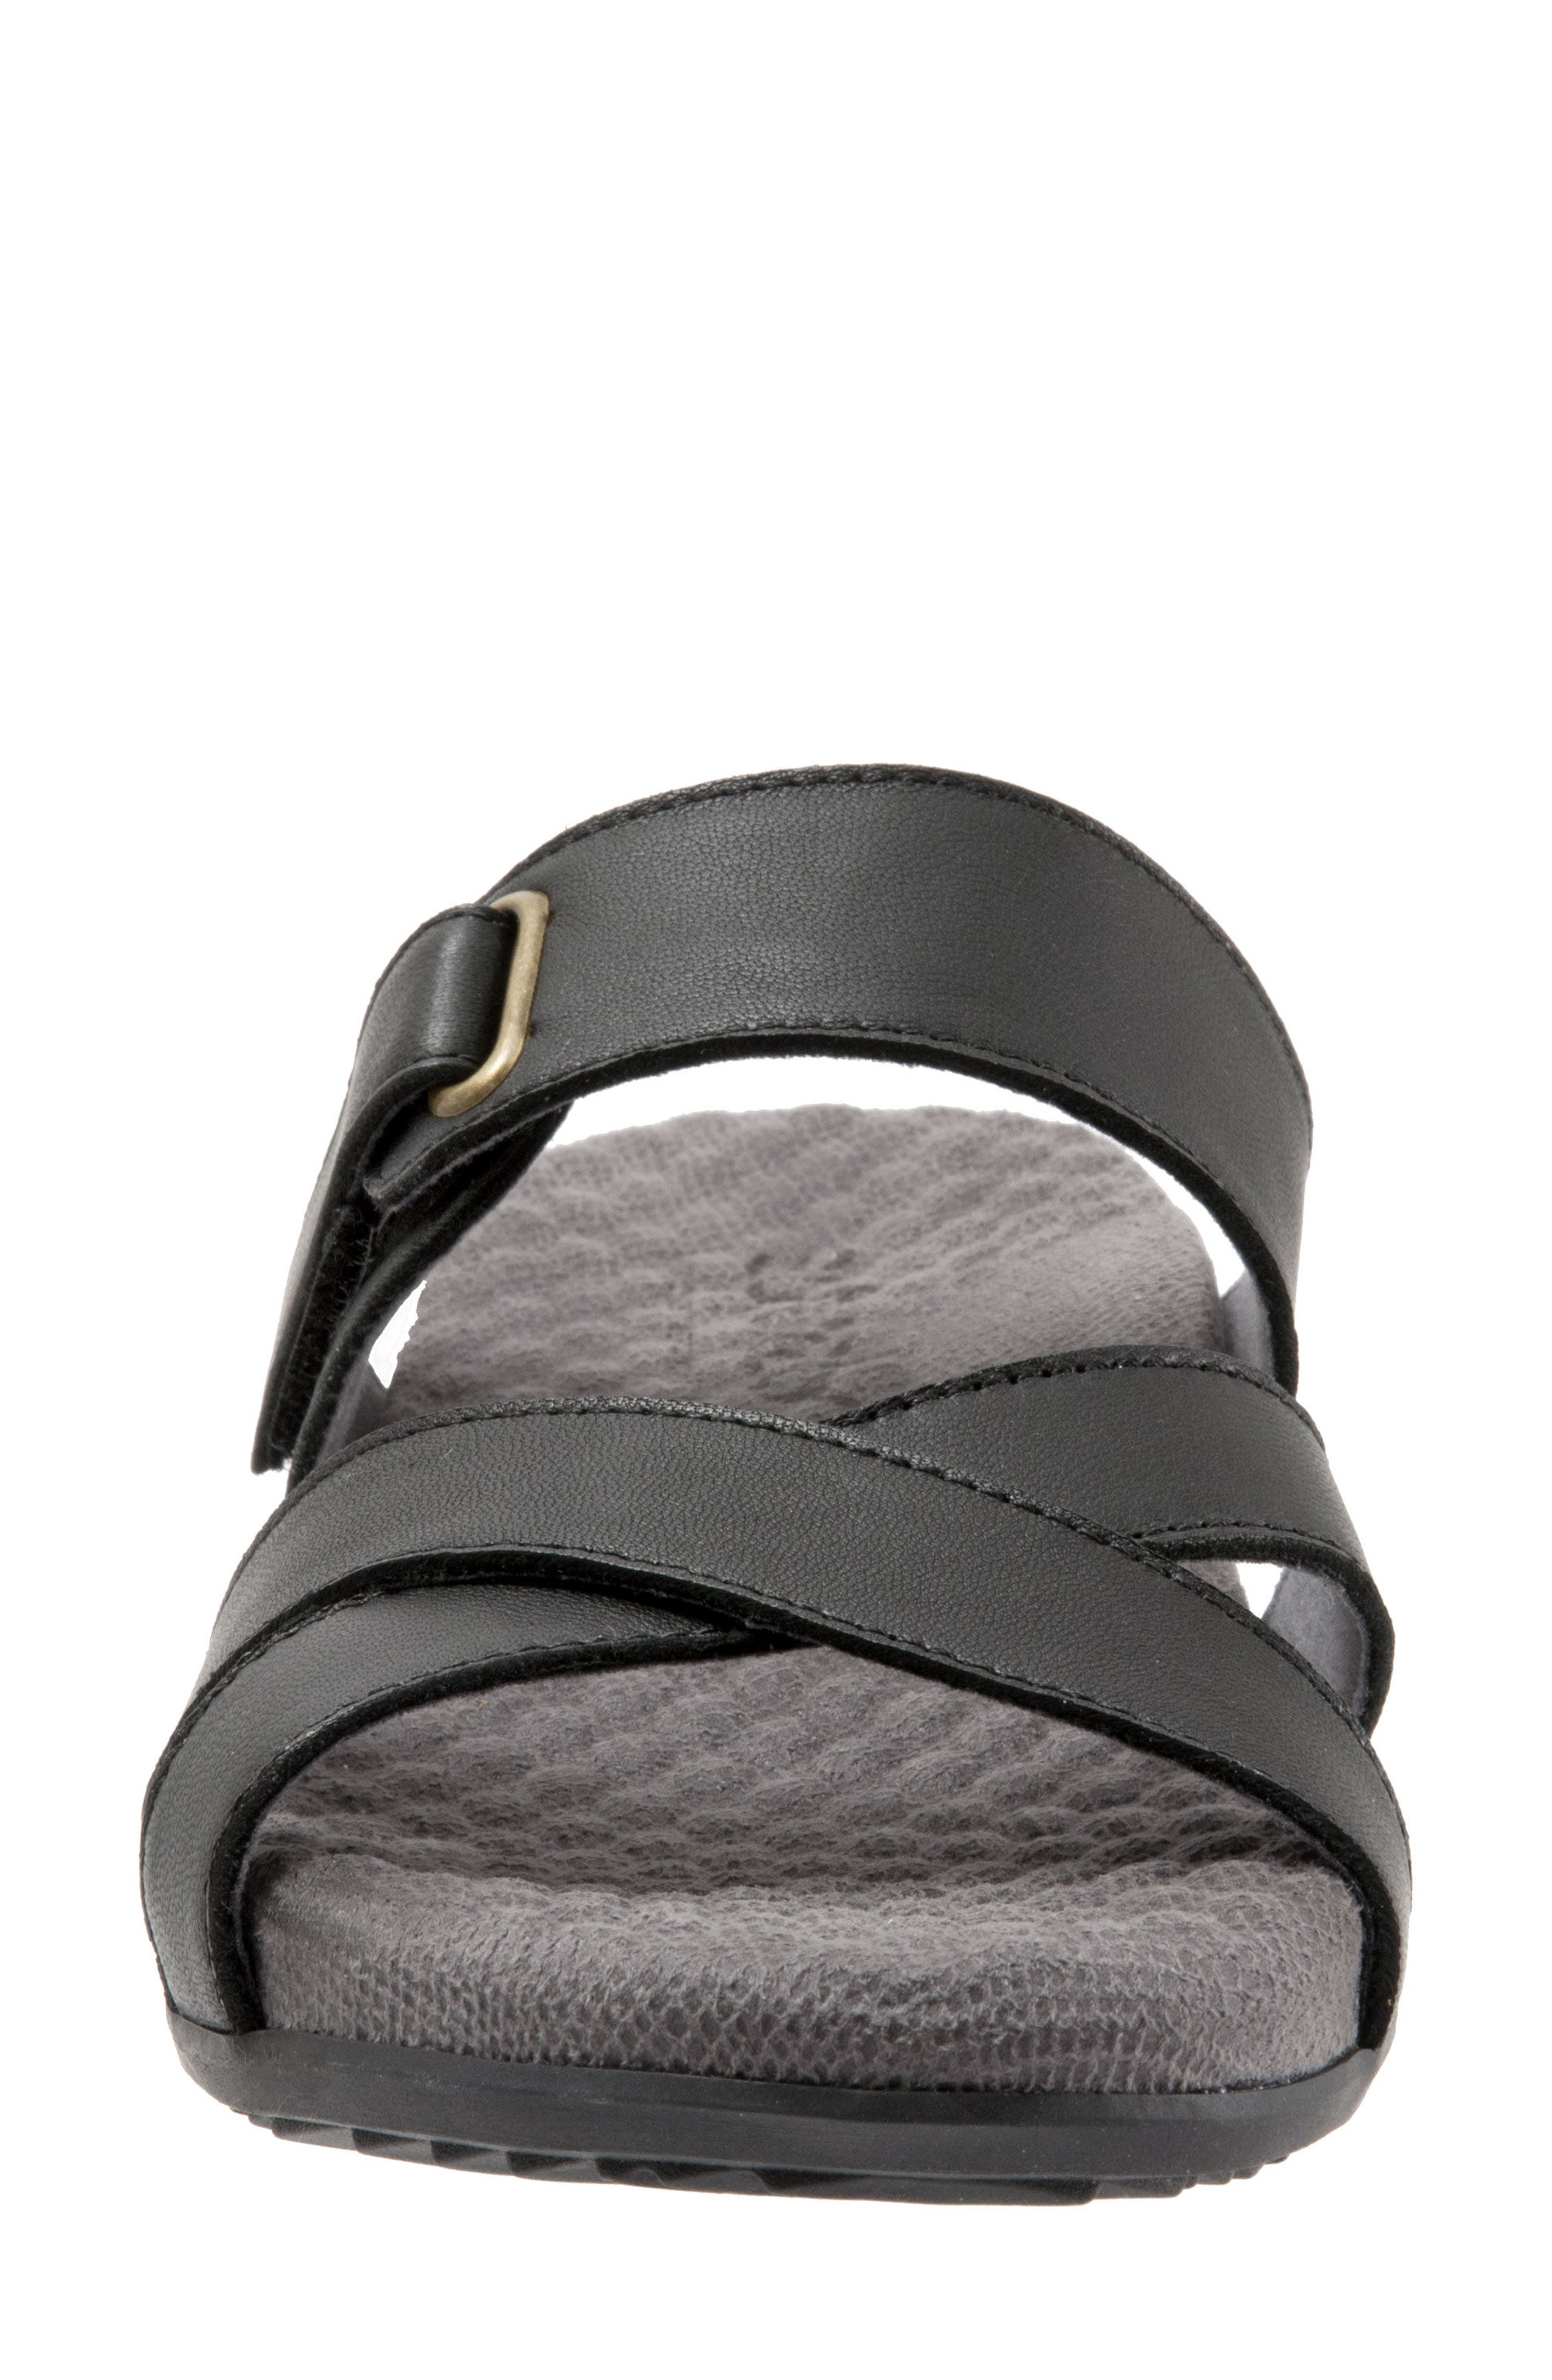 Brimley Sandal,                             Alternate thumbnail 5, color,                             Black Leather